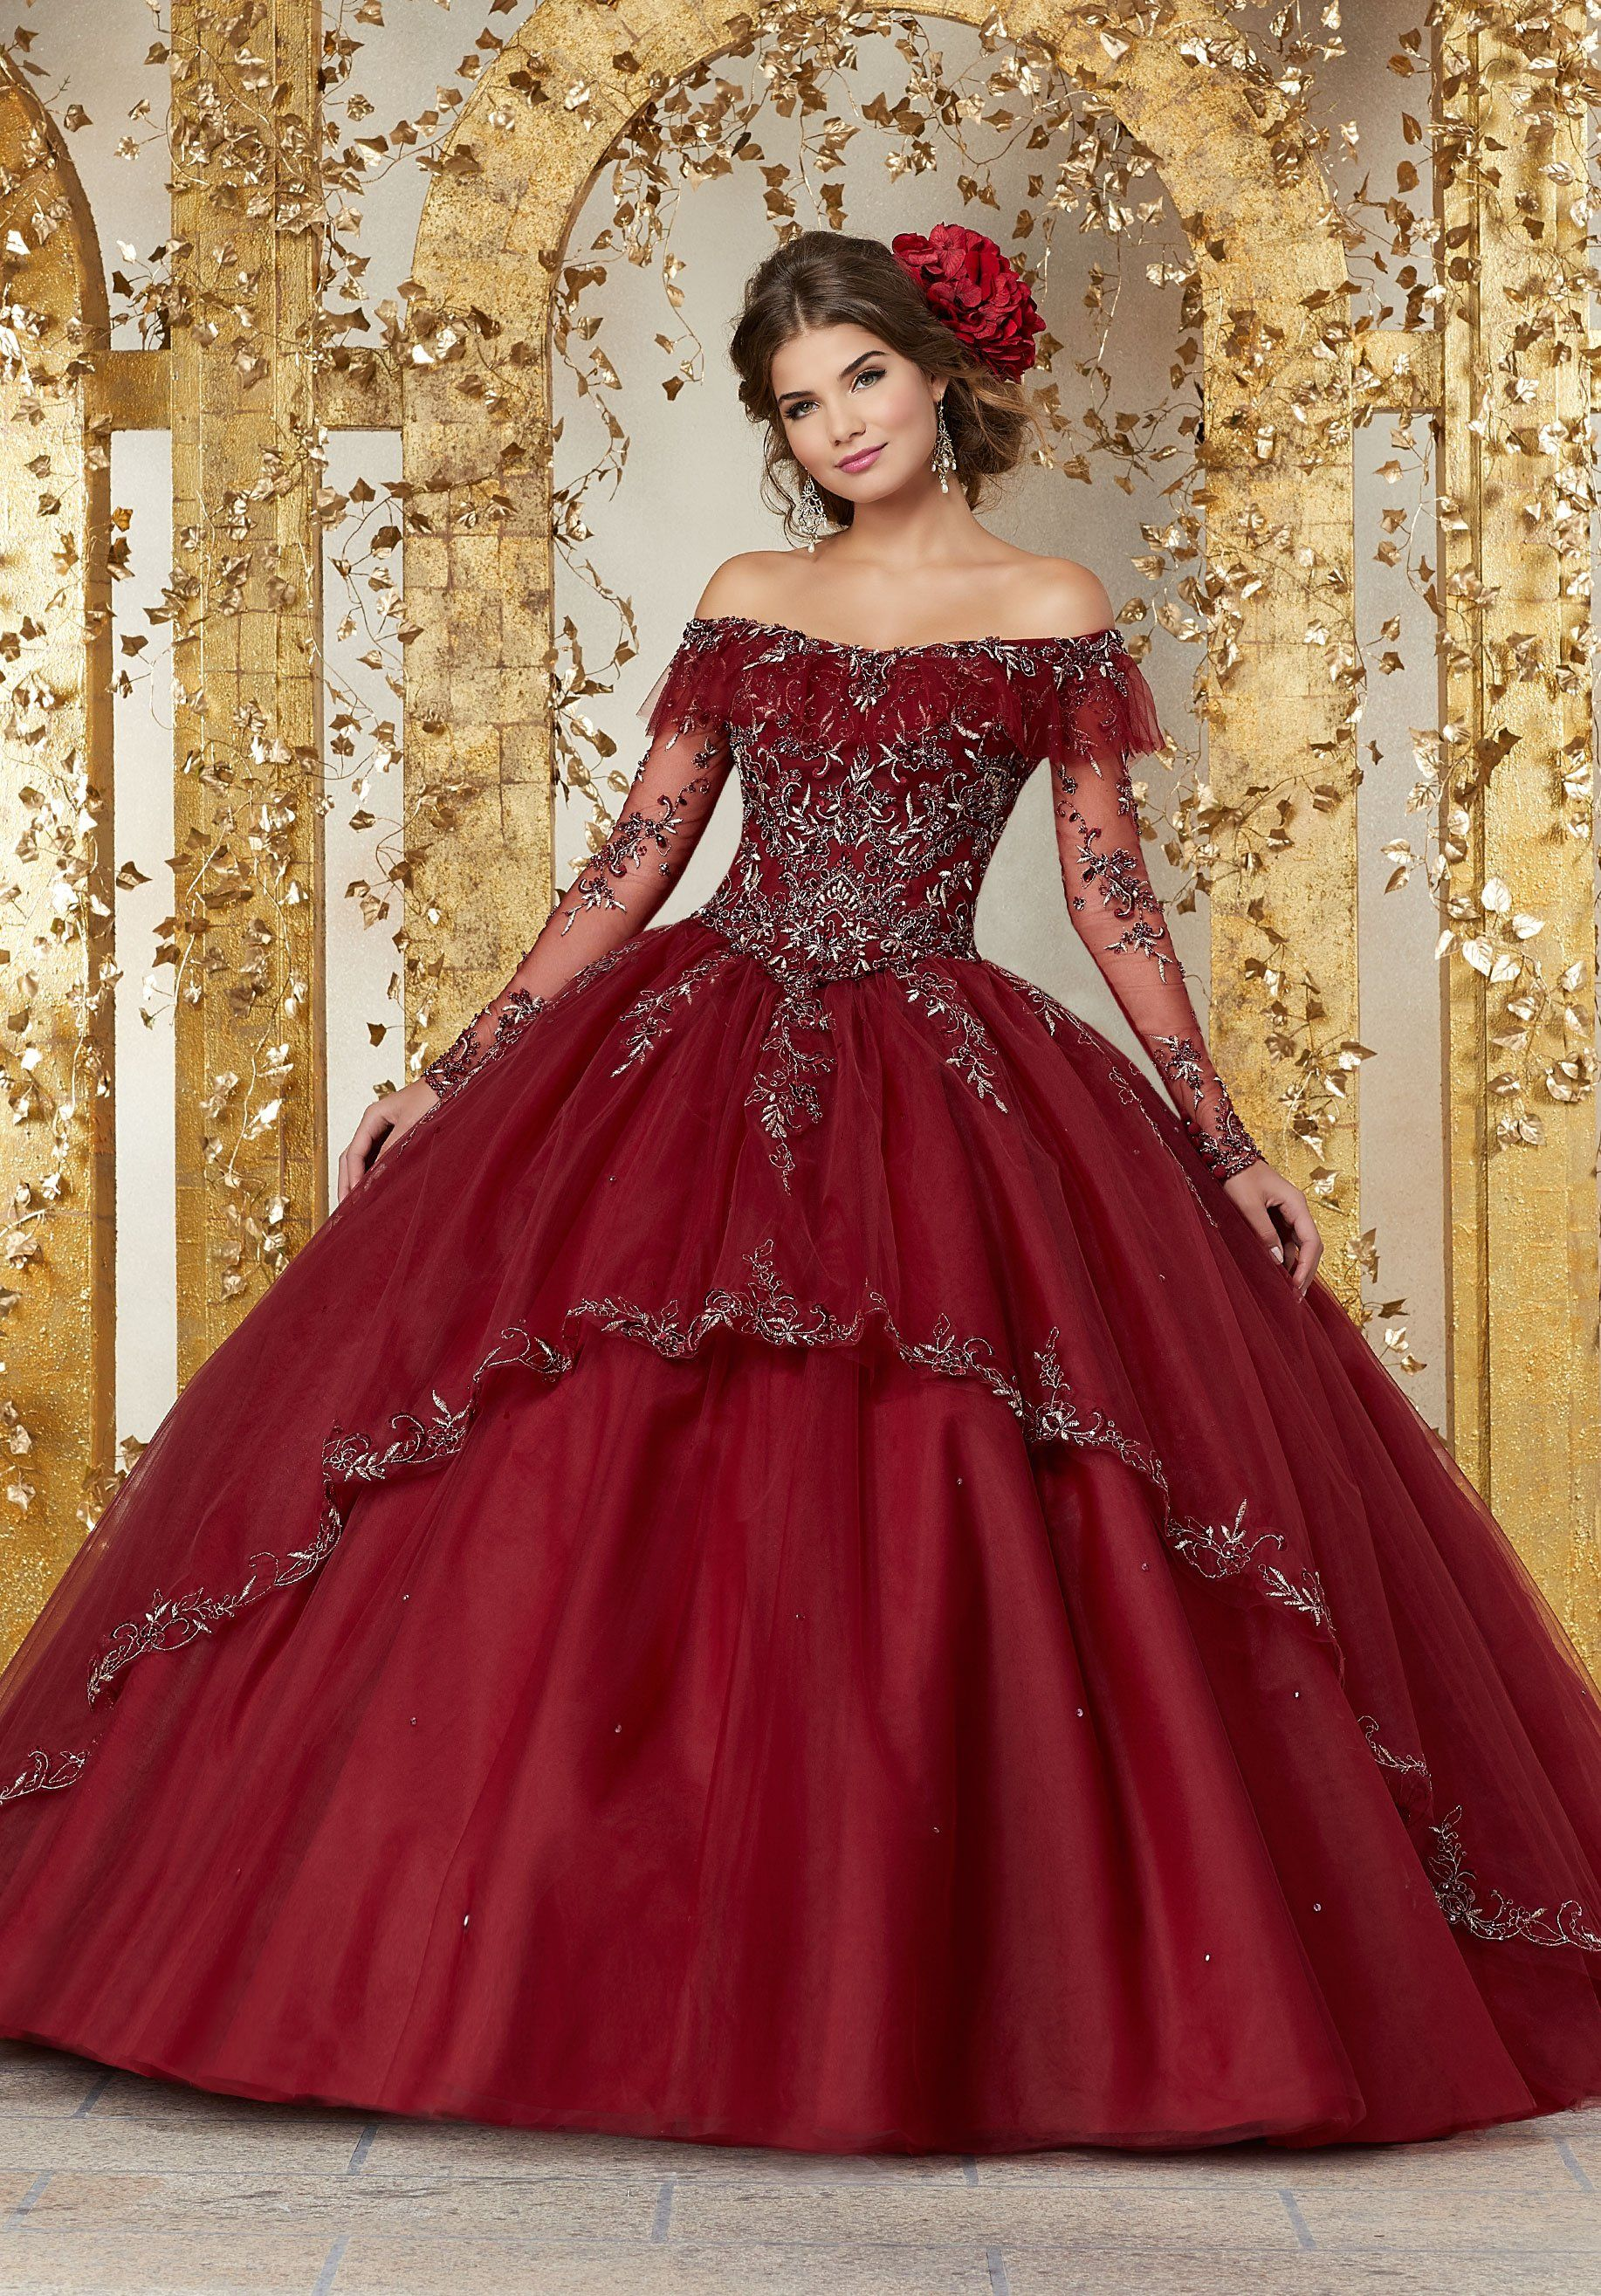 Vizcaya By Mori Lee 89235 Off Shoulder Illusion Long Sleeve Ballgown In 2021 Long Sleeve Quinceanera Dresses Sweet 15 Dresses Pretty Quinceanera Dresses [ 2630 x 1834 Pixel ]